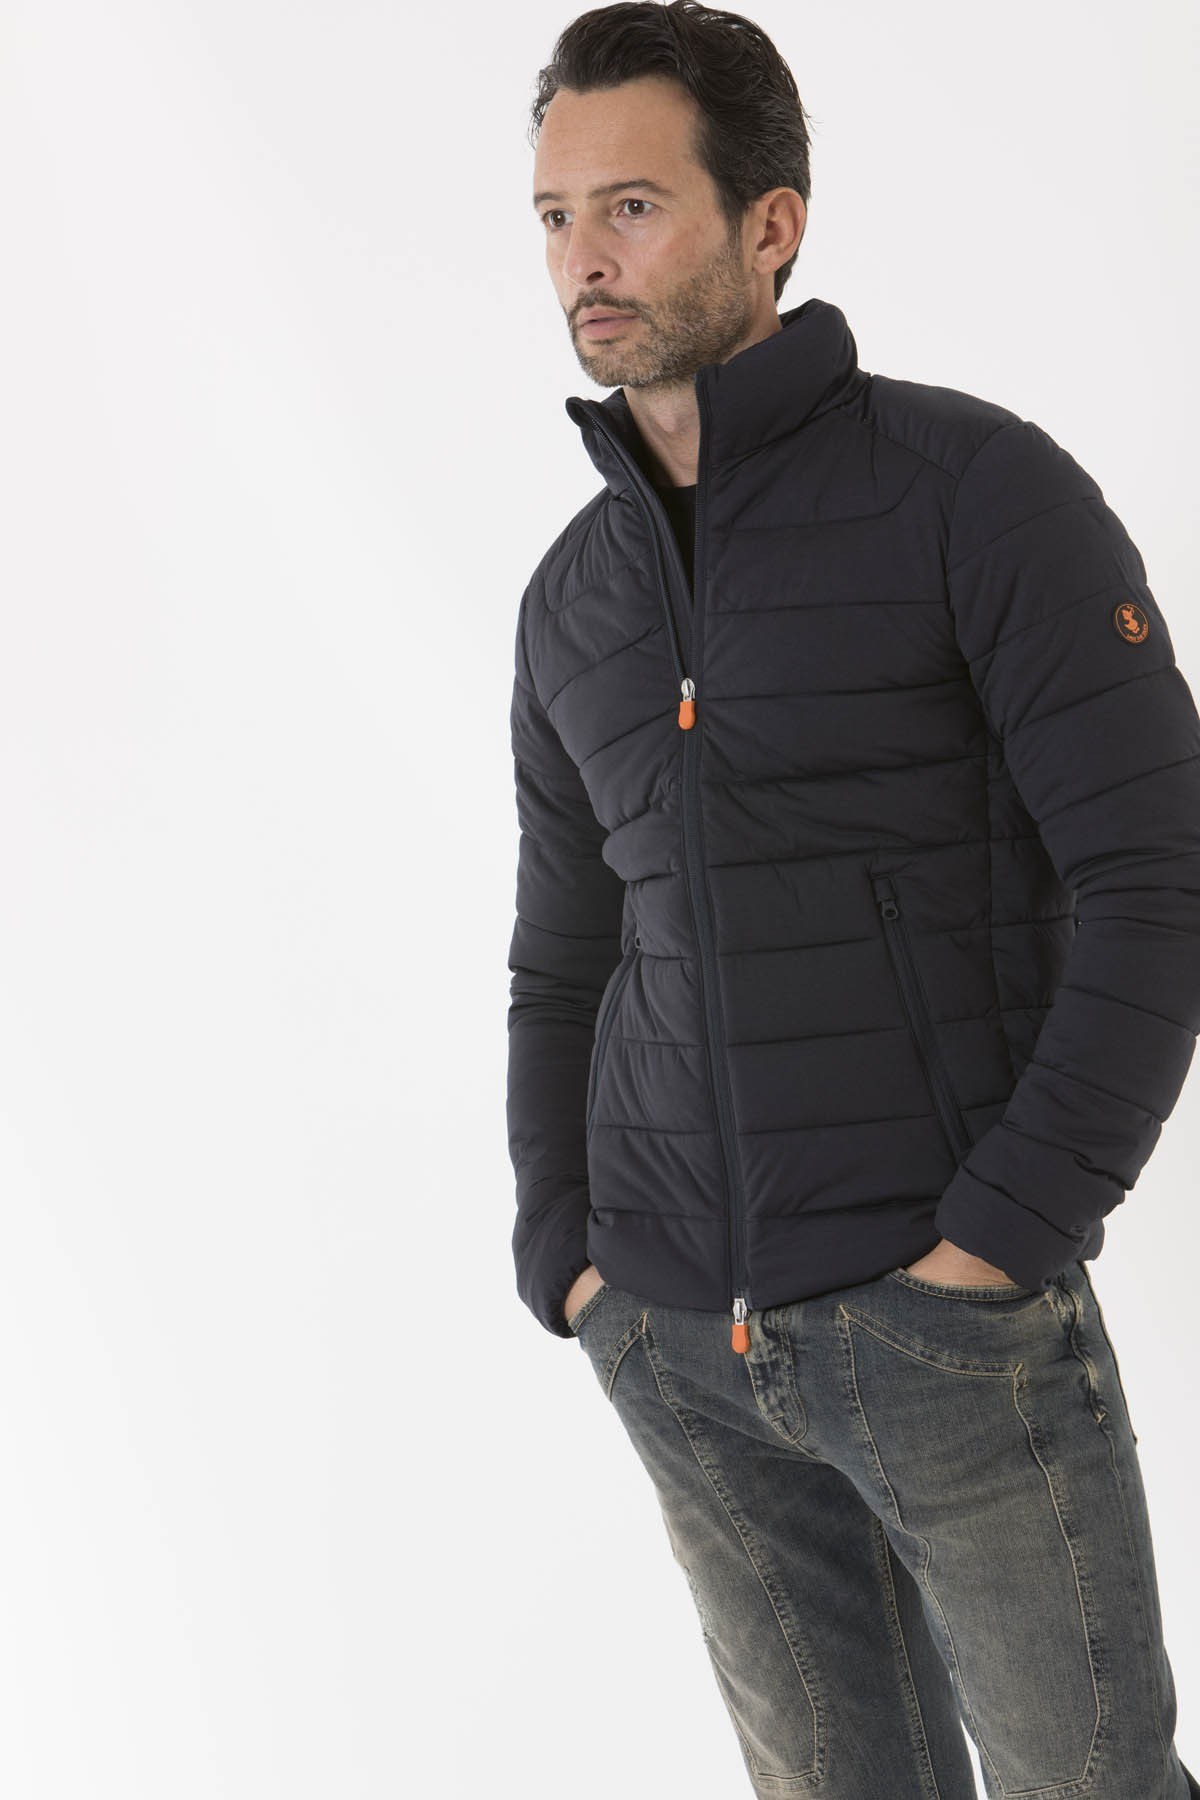 newest 3ef6a 97faf Jacket for man D3642M ANGY7 SAVE THE DUCK F/W 18-19